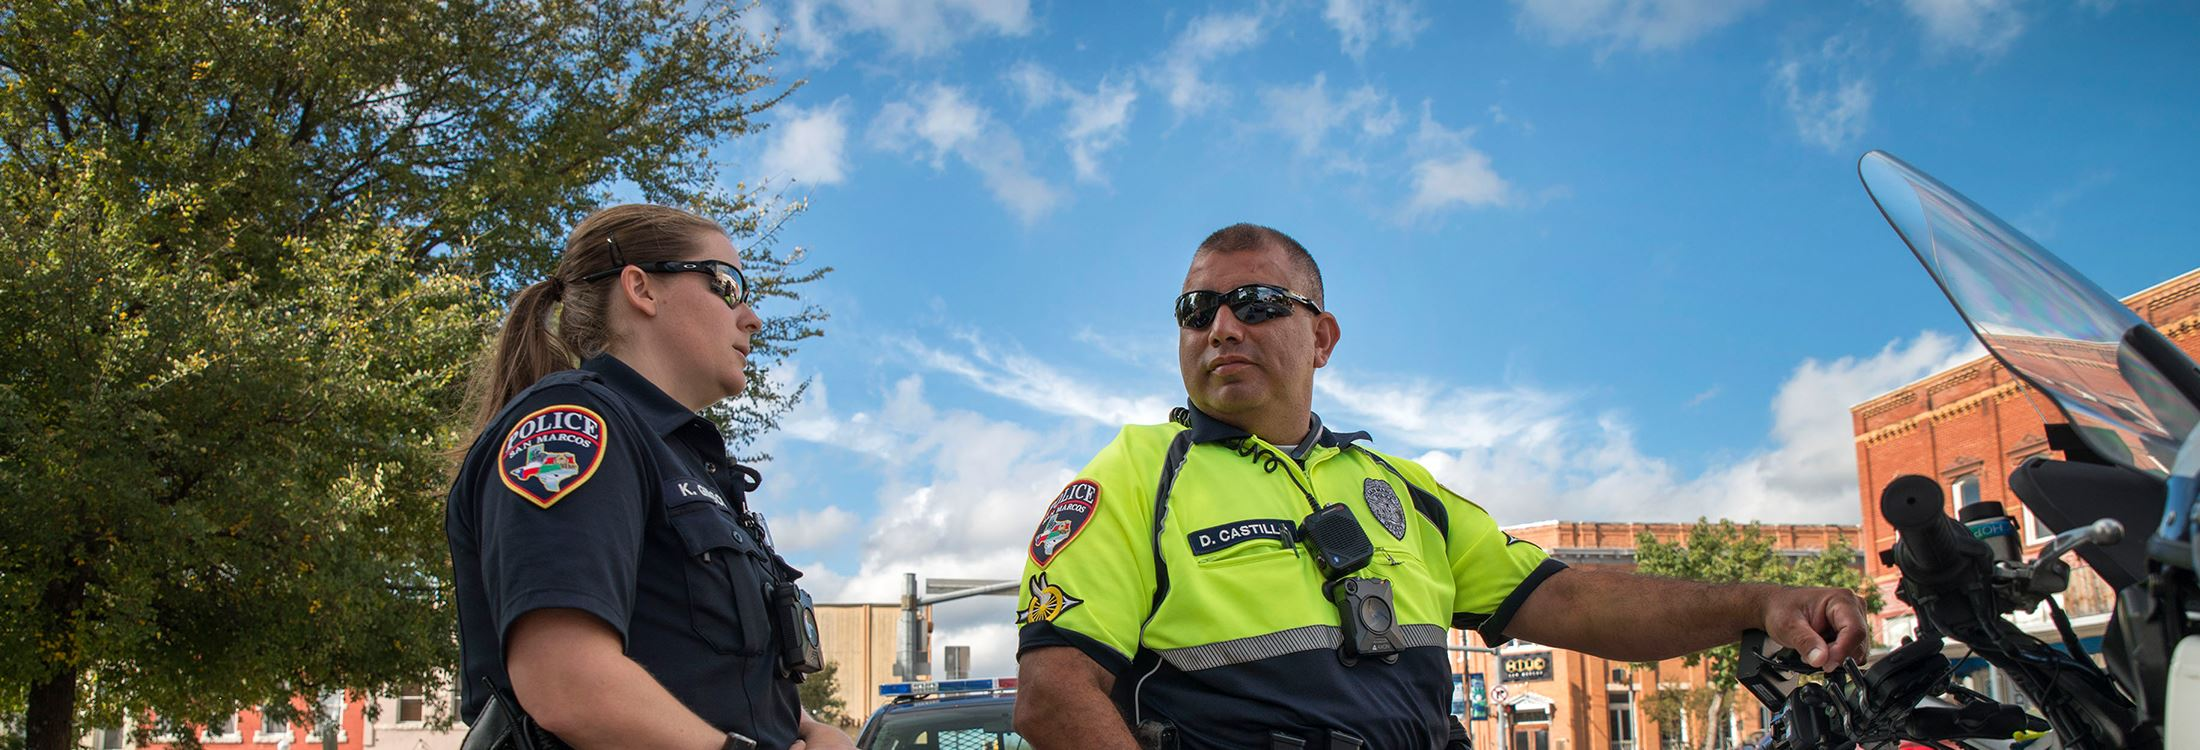 Police | City of San Marcos, TX